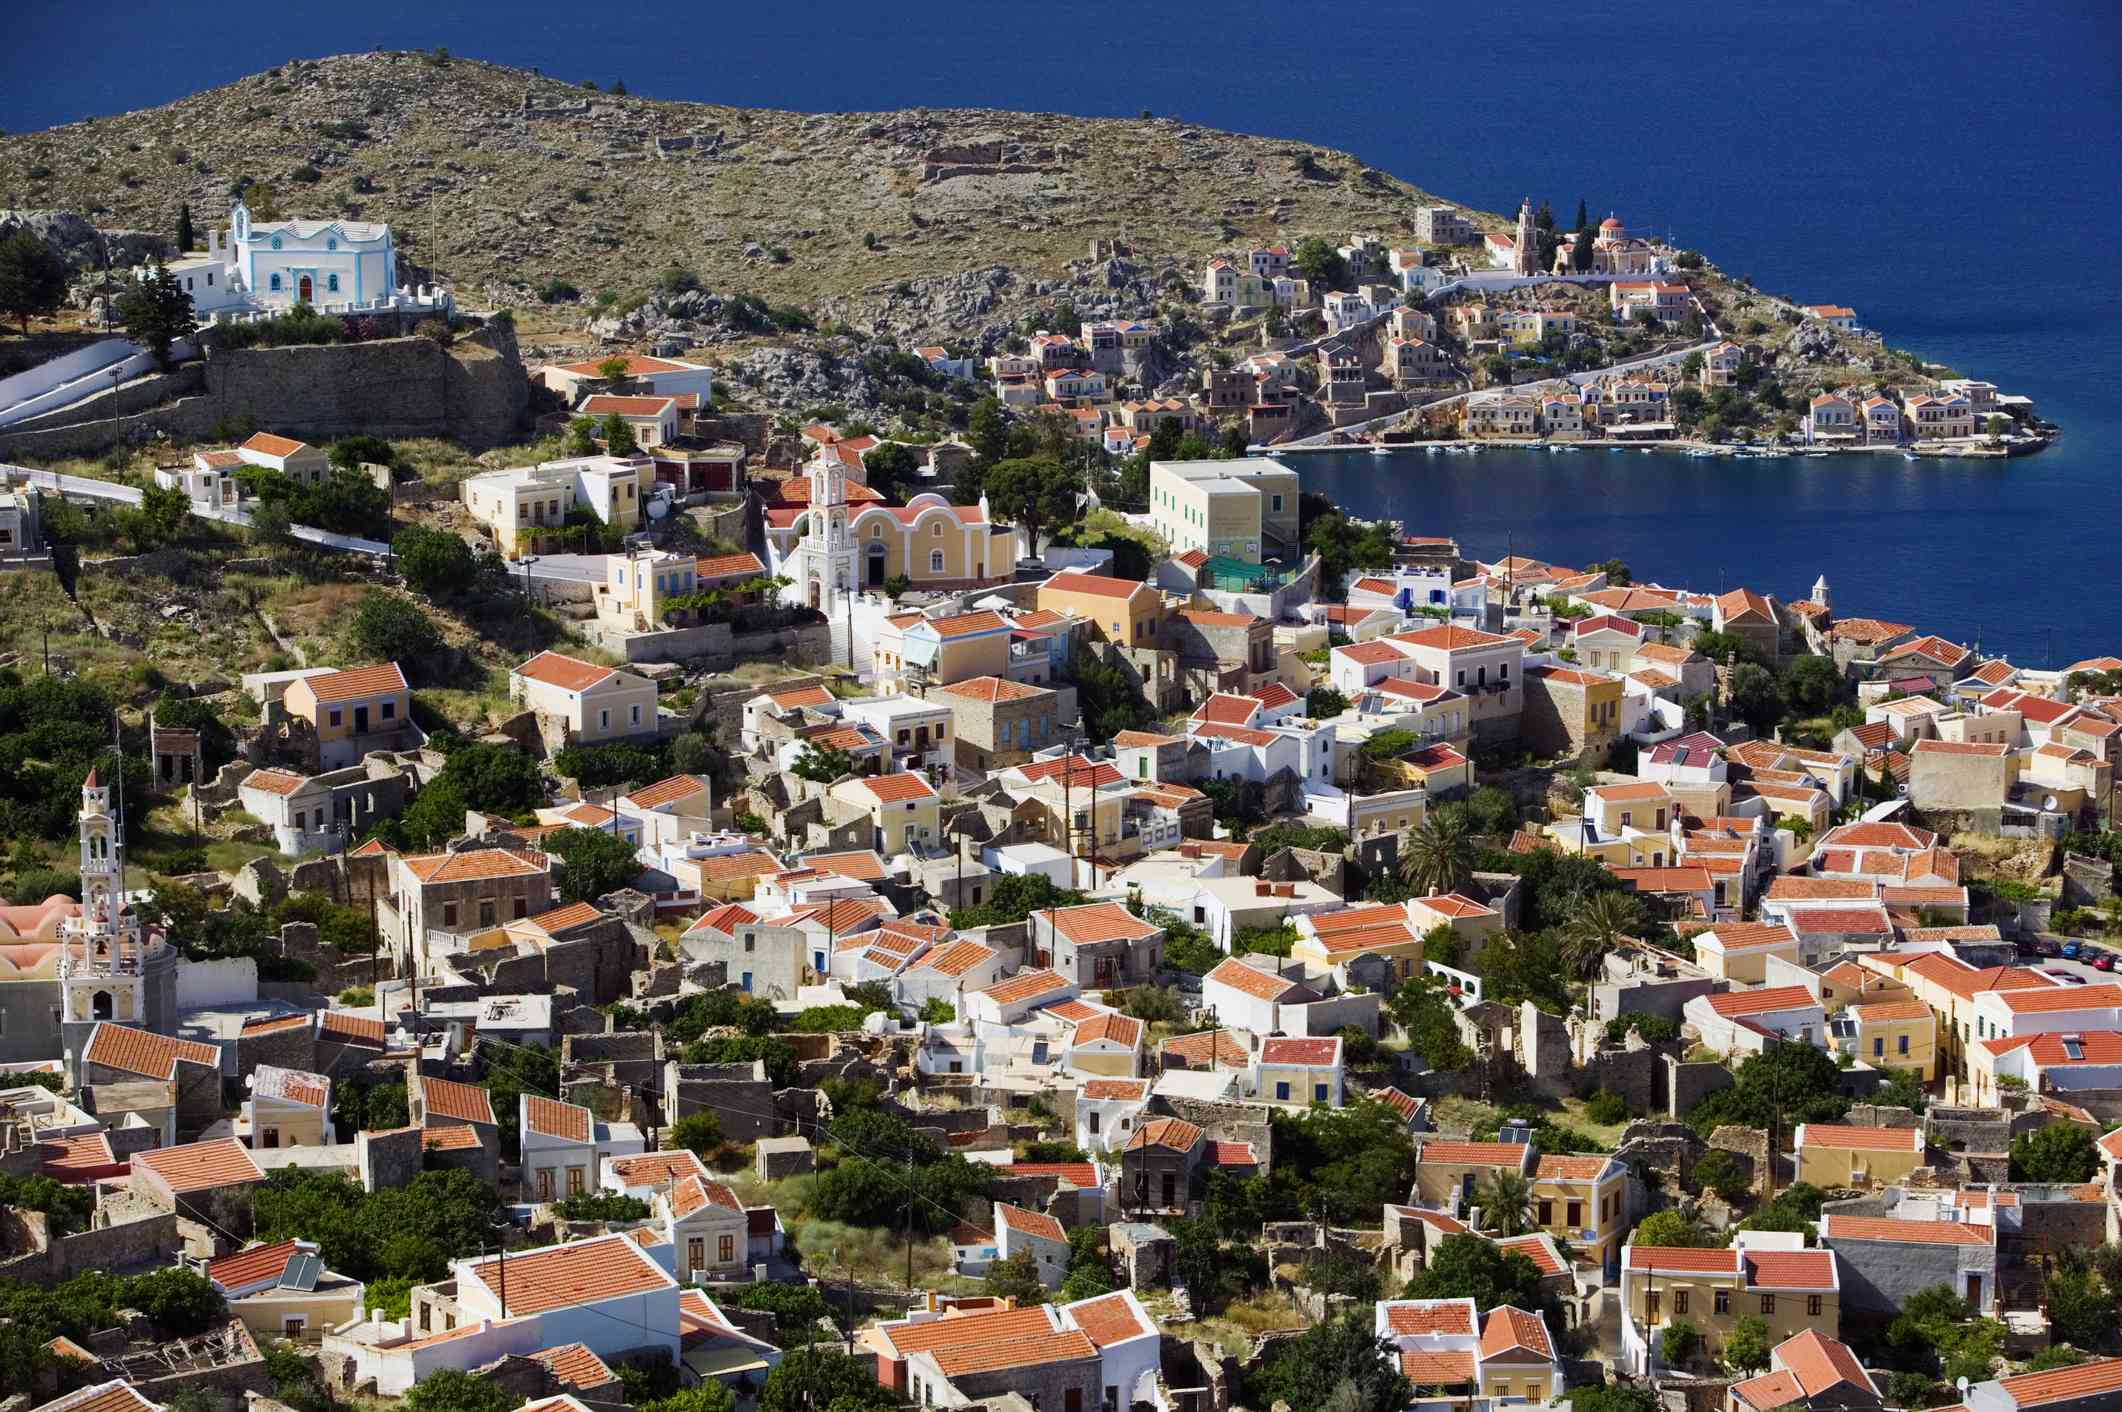 View of Horio, Upper Town, Late Afternoon, Greece